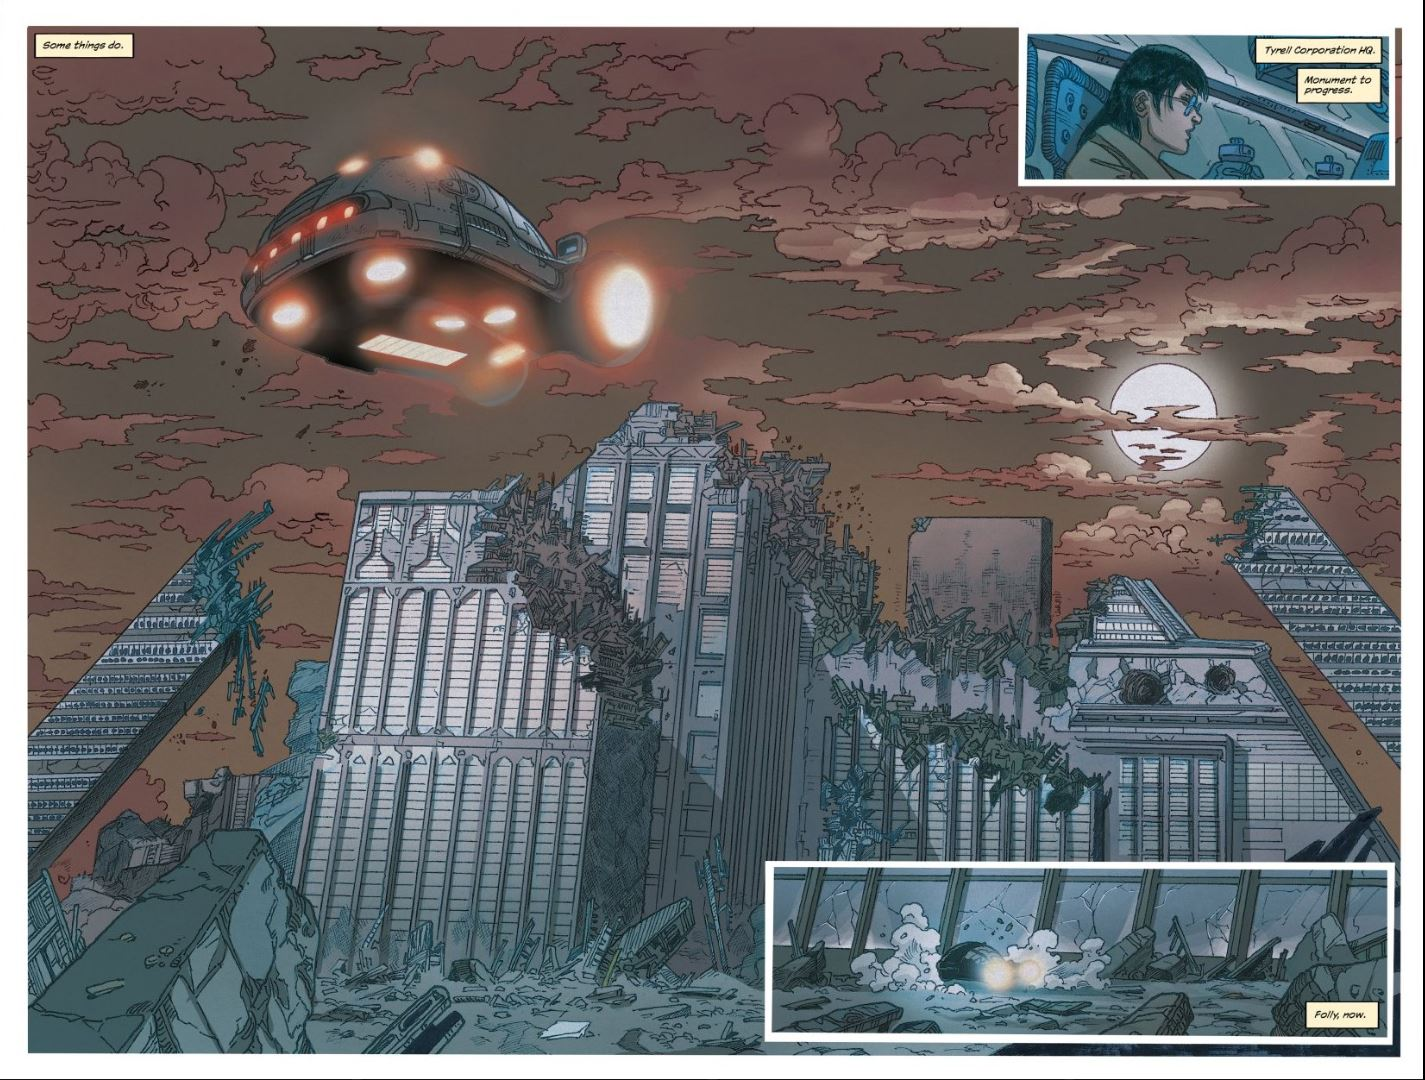 Blade Runner issue #9 Tyrell Pyramids remains